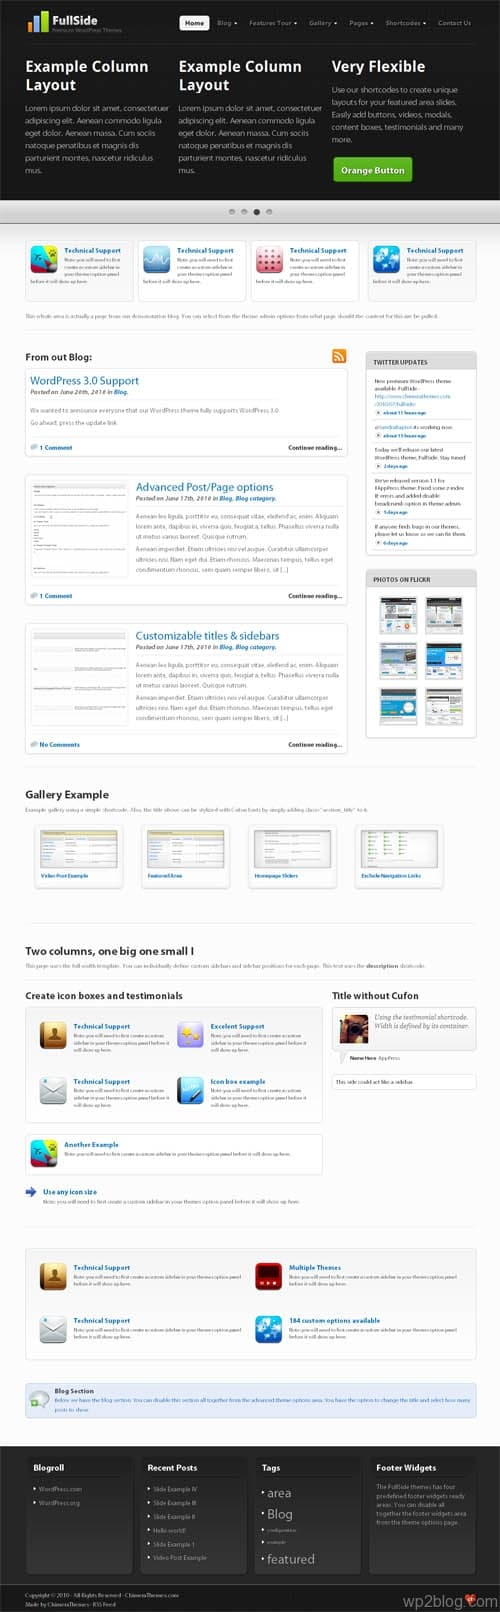 fullslide wordpress theme